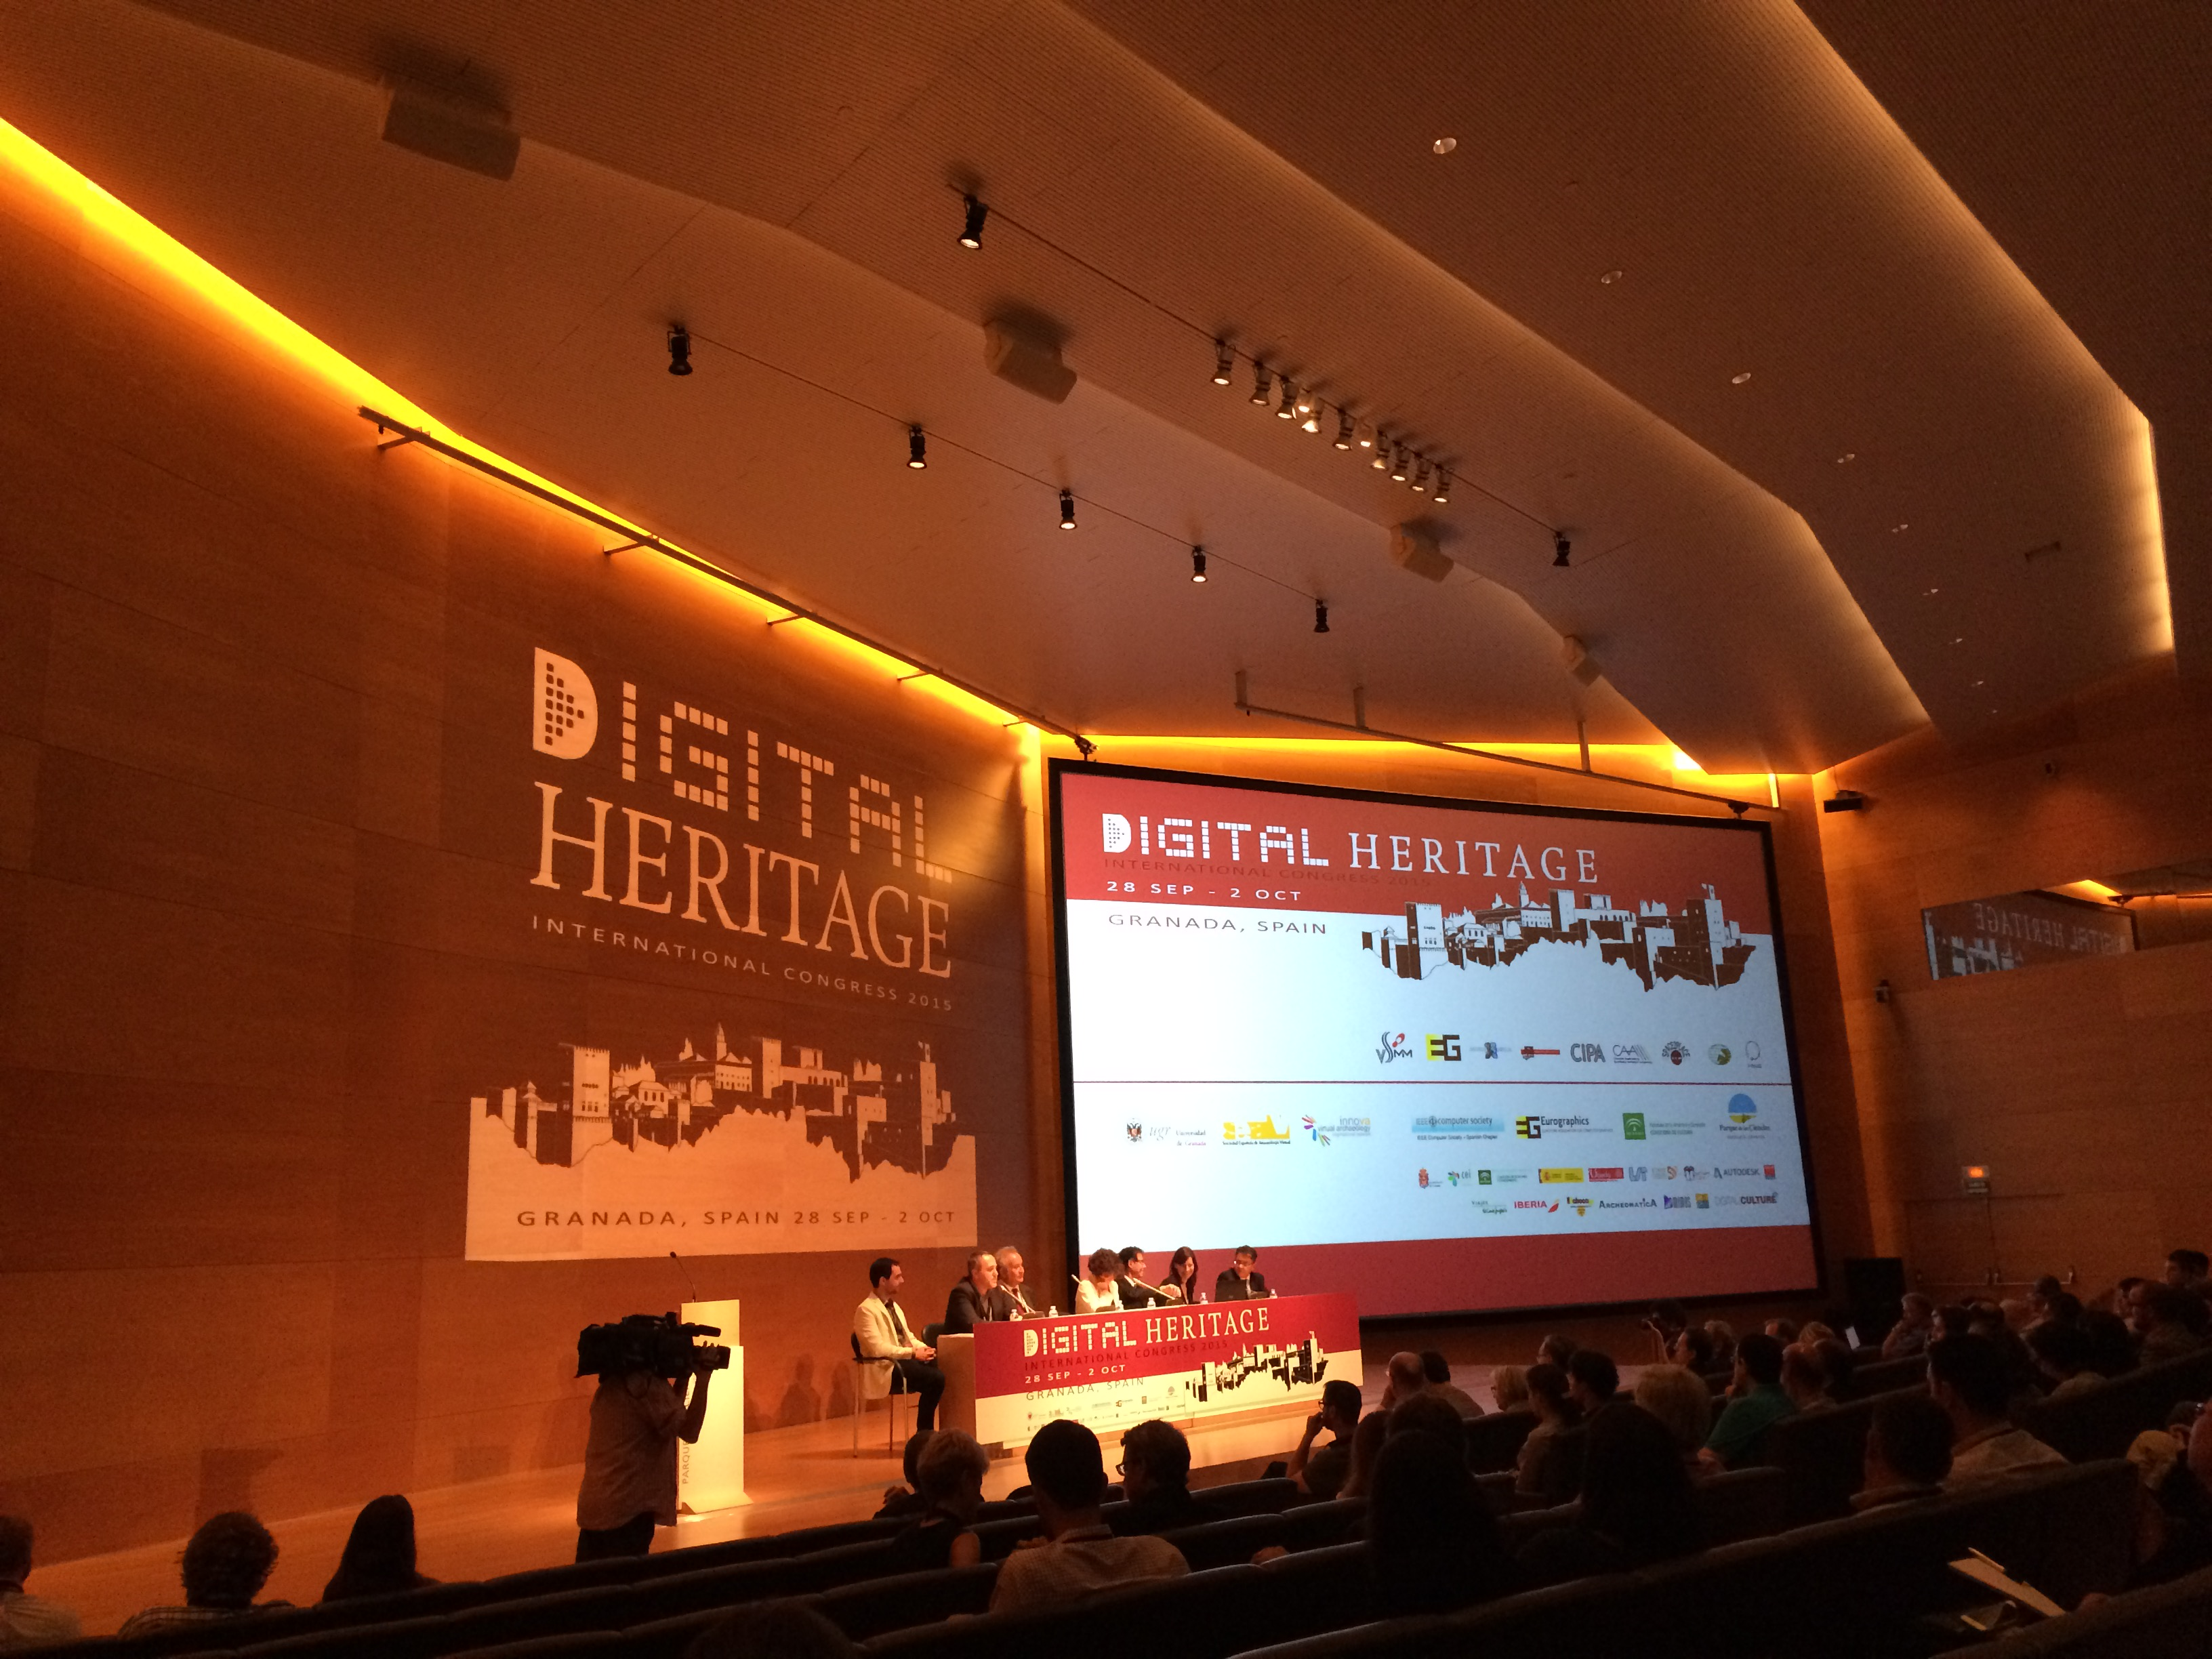 2015 Digital Heritage Conference in Granada, Spain